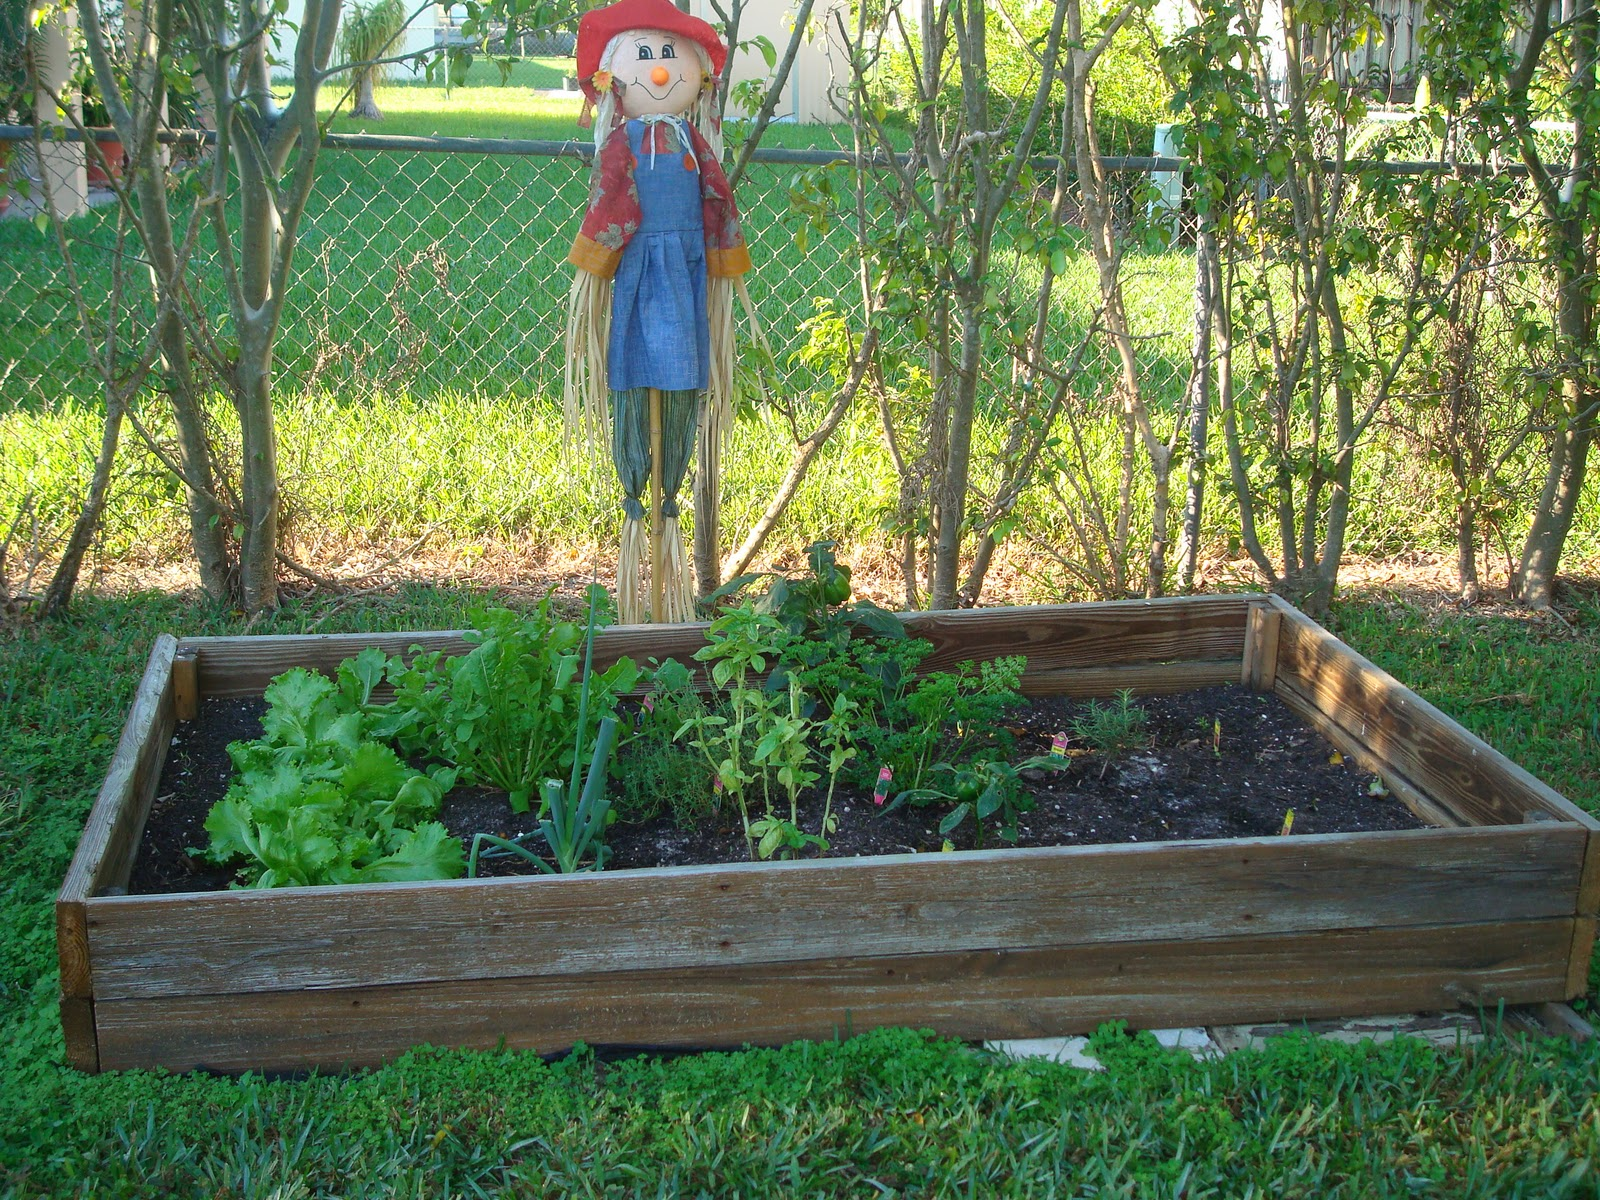 Miami and south florida green and leed homes for sale for Building a raised vegetable garden